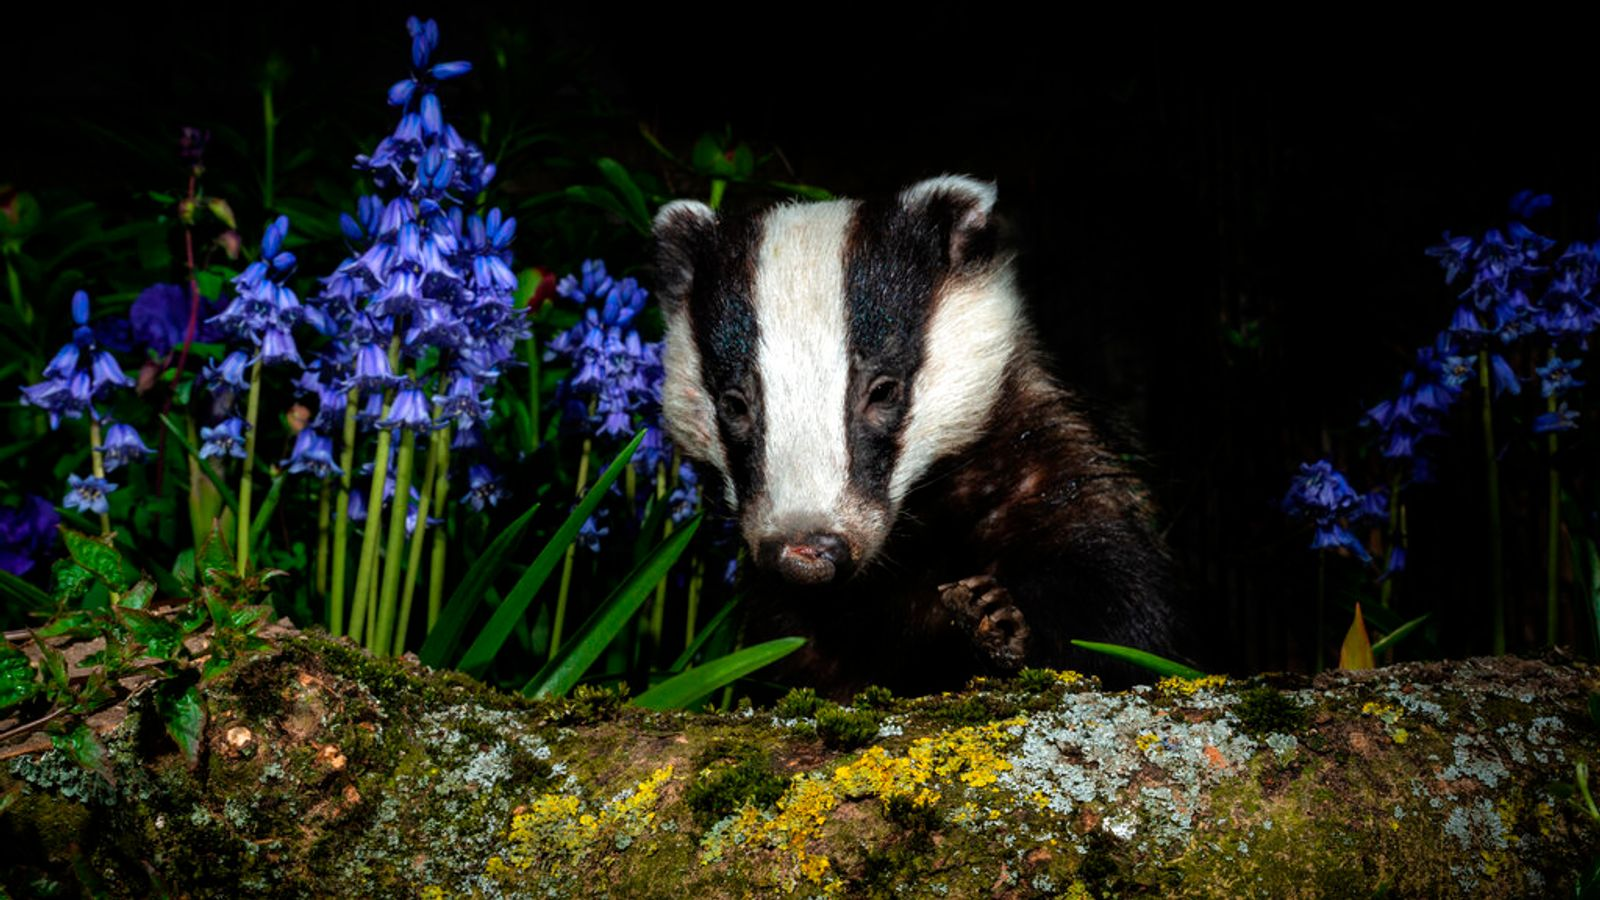 Badger cull: Thousands to be put down in seven new areas across England as government battles bovine TB